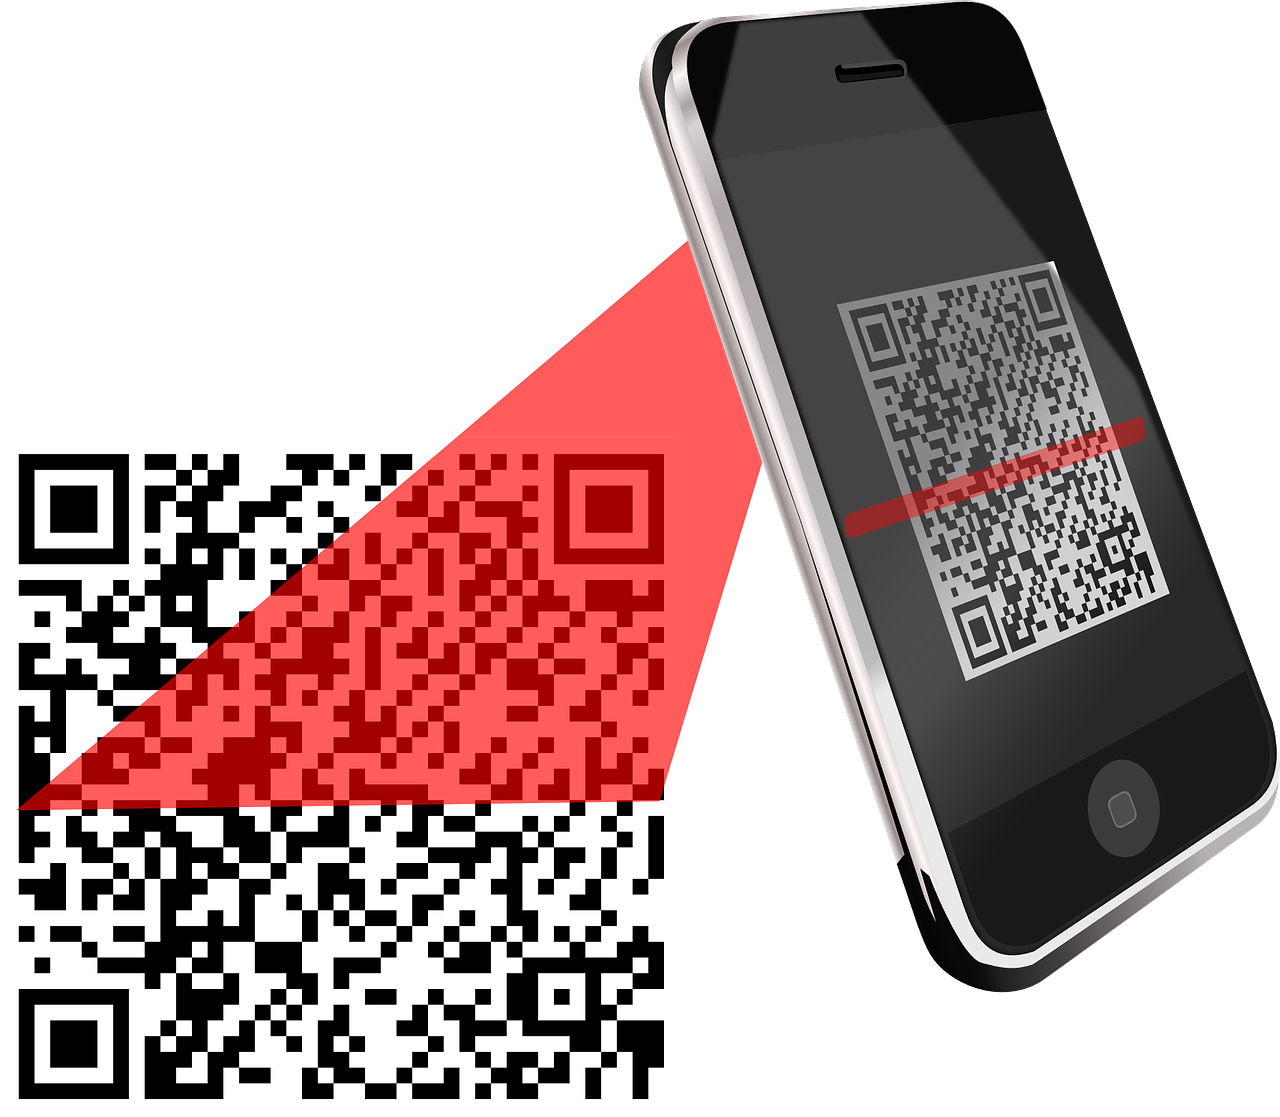 Inspect the Barcode/ QR Code